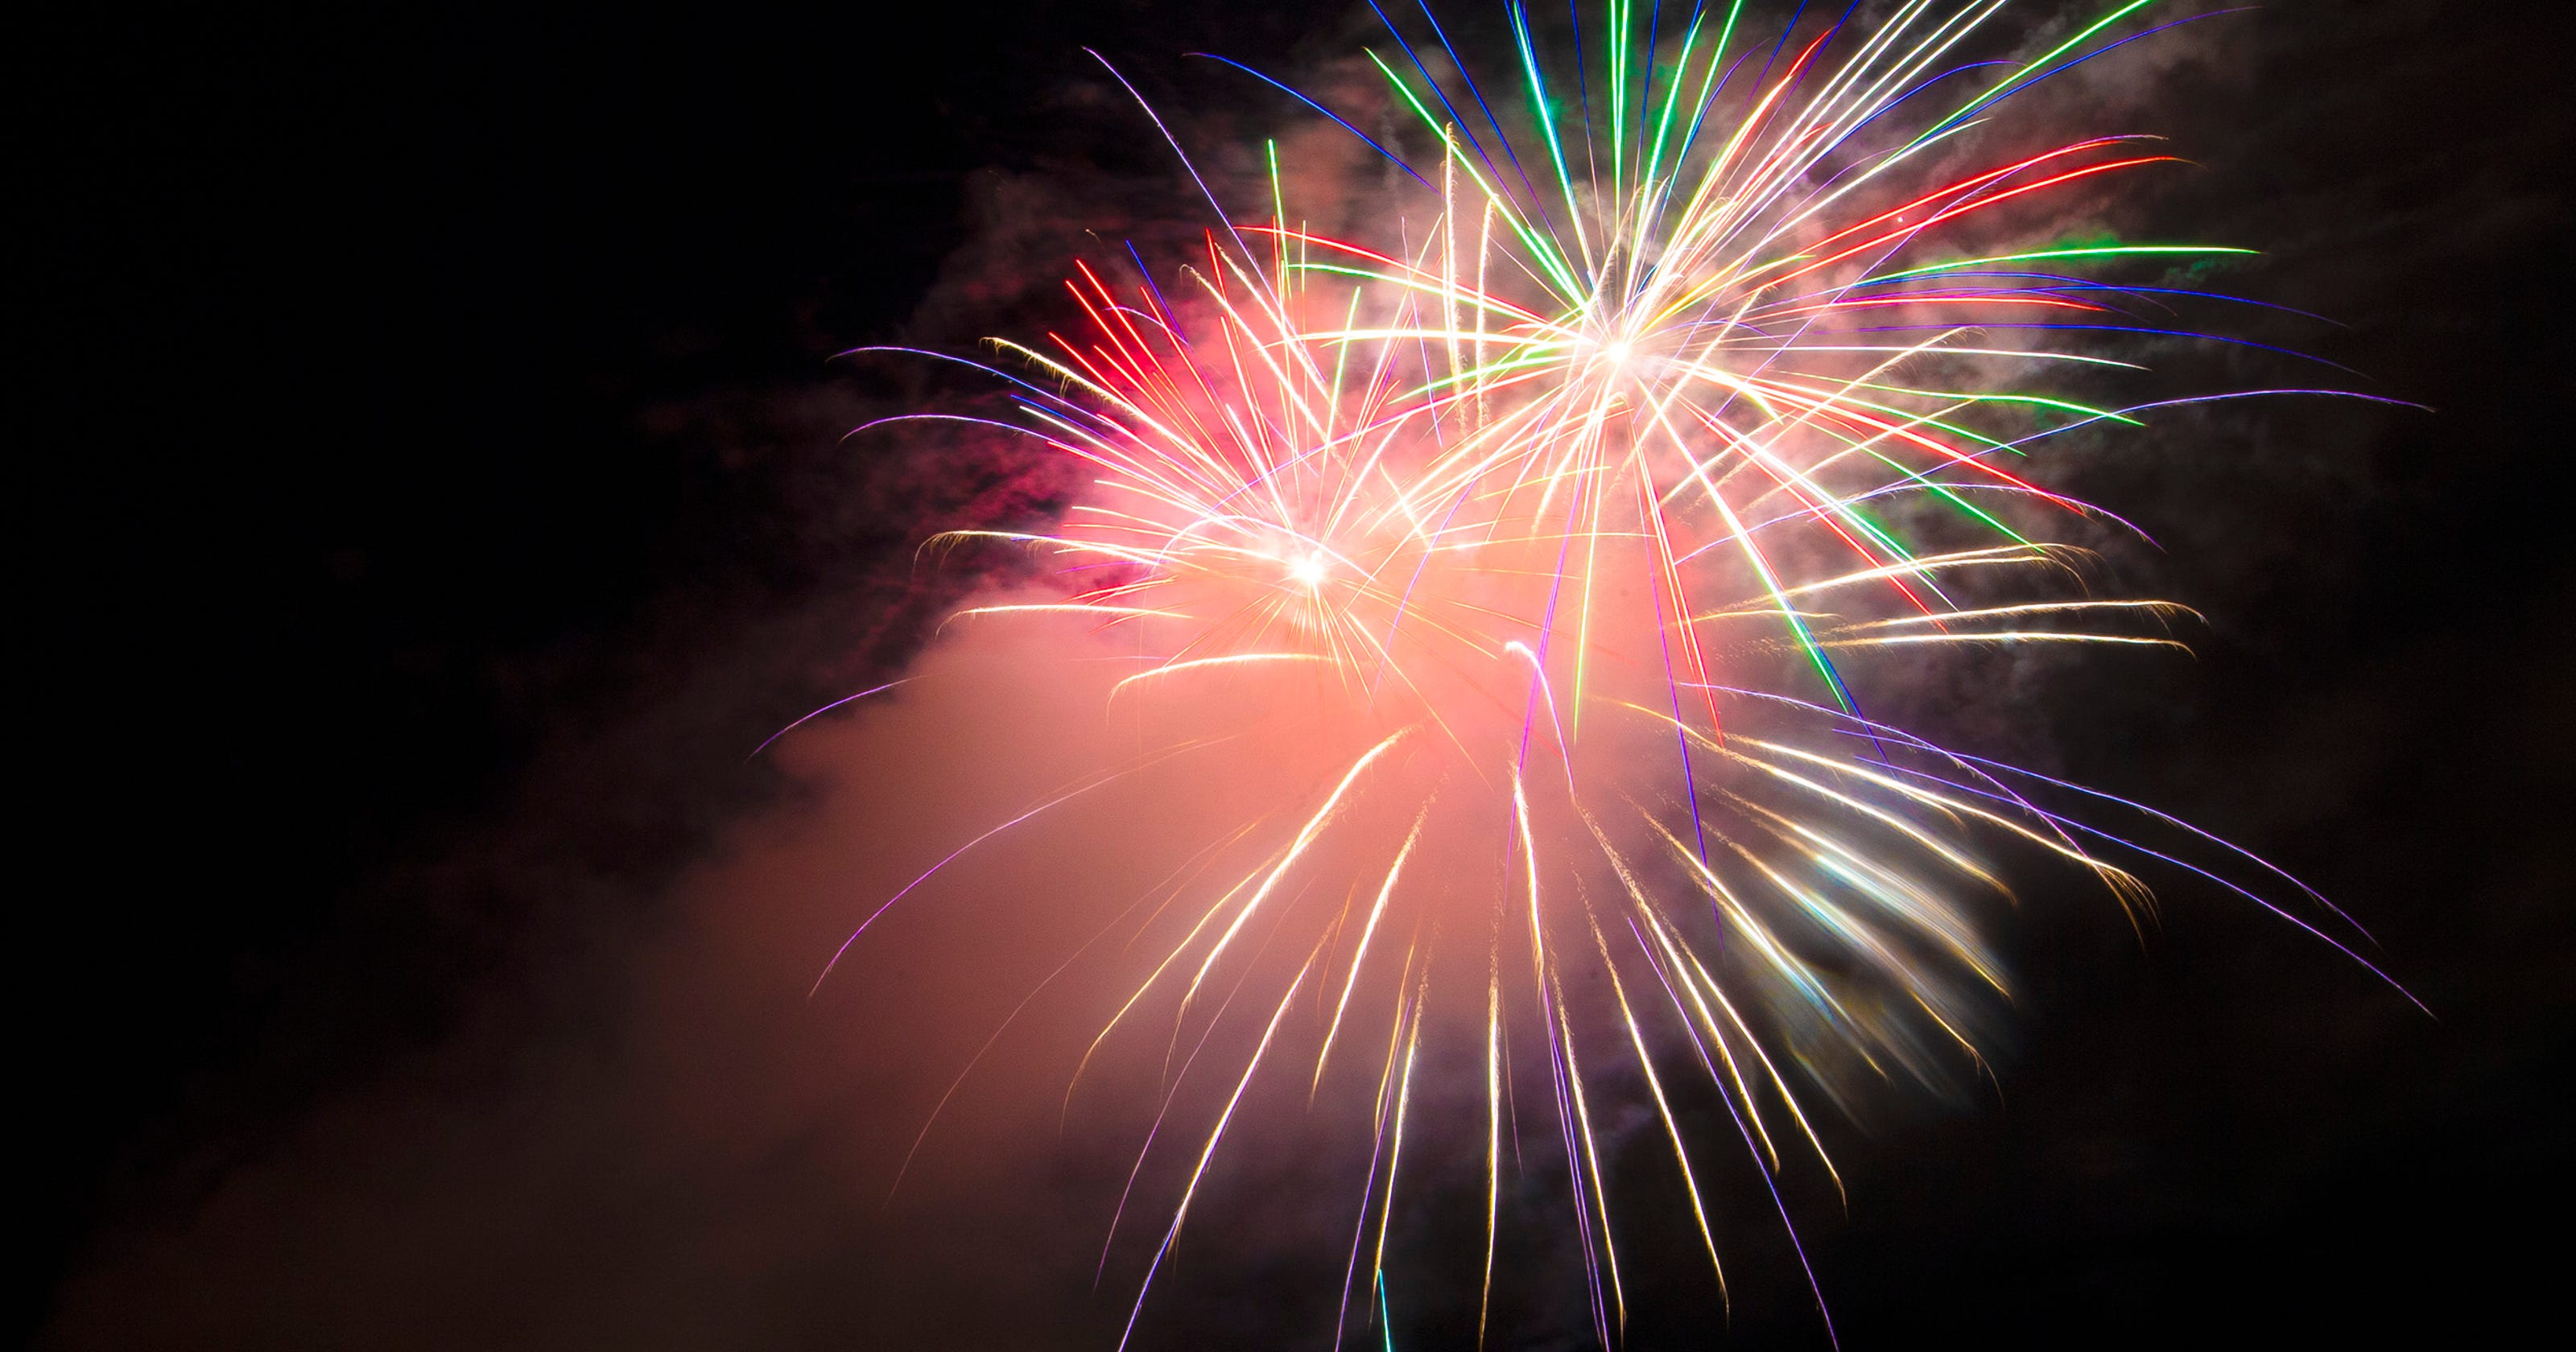 NJ fireworks 2019: Calendar listing of fireworks throughout New Jersey